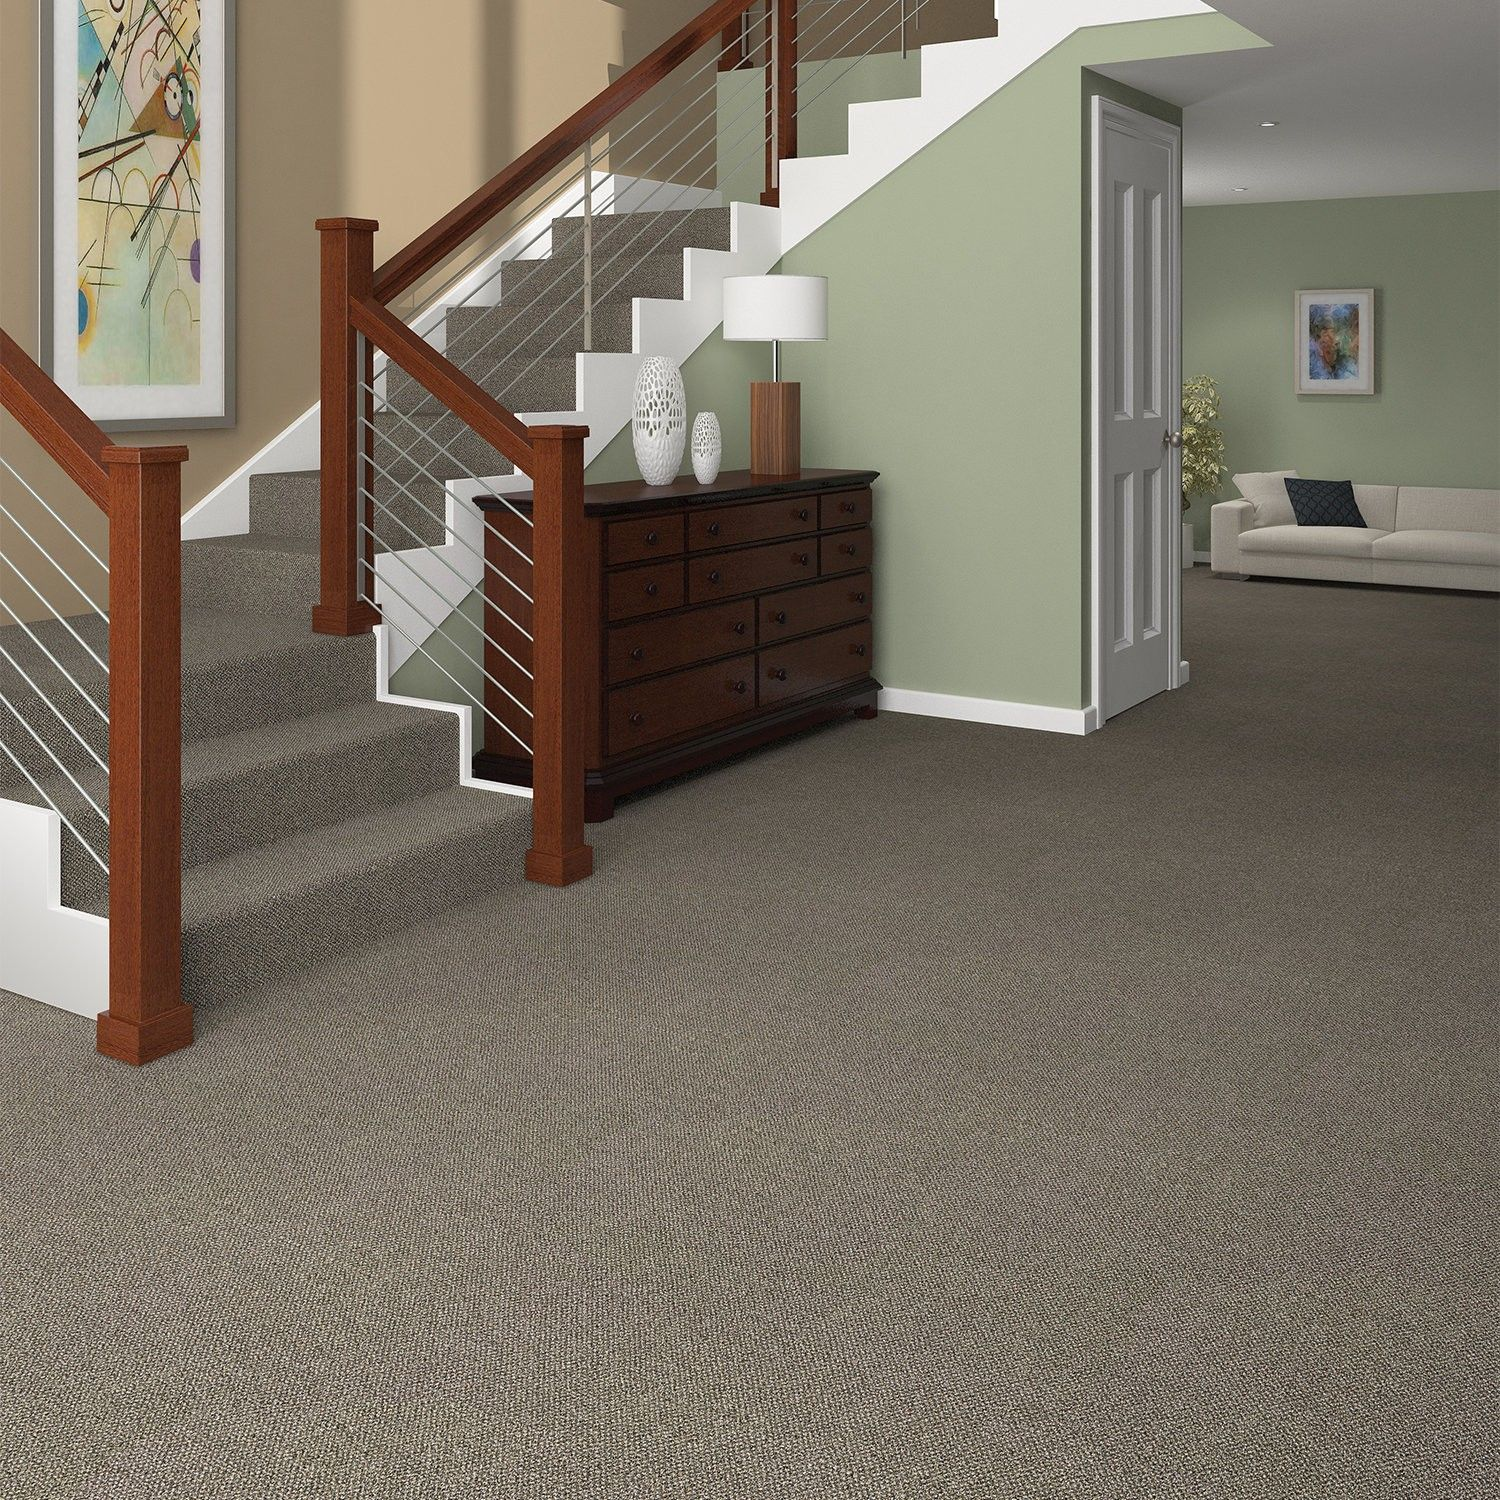 Best Westhill Textured Carpet Textured Carpet Carpet Sale 400 x 300